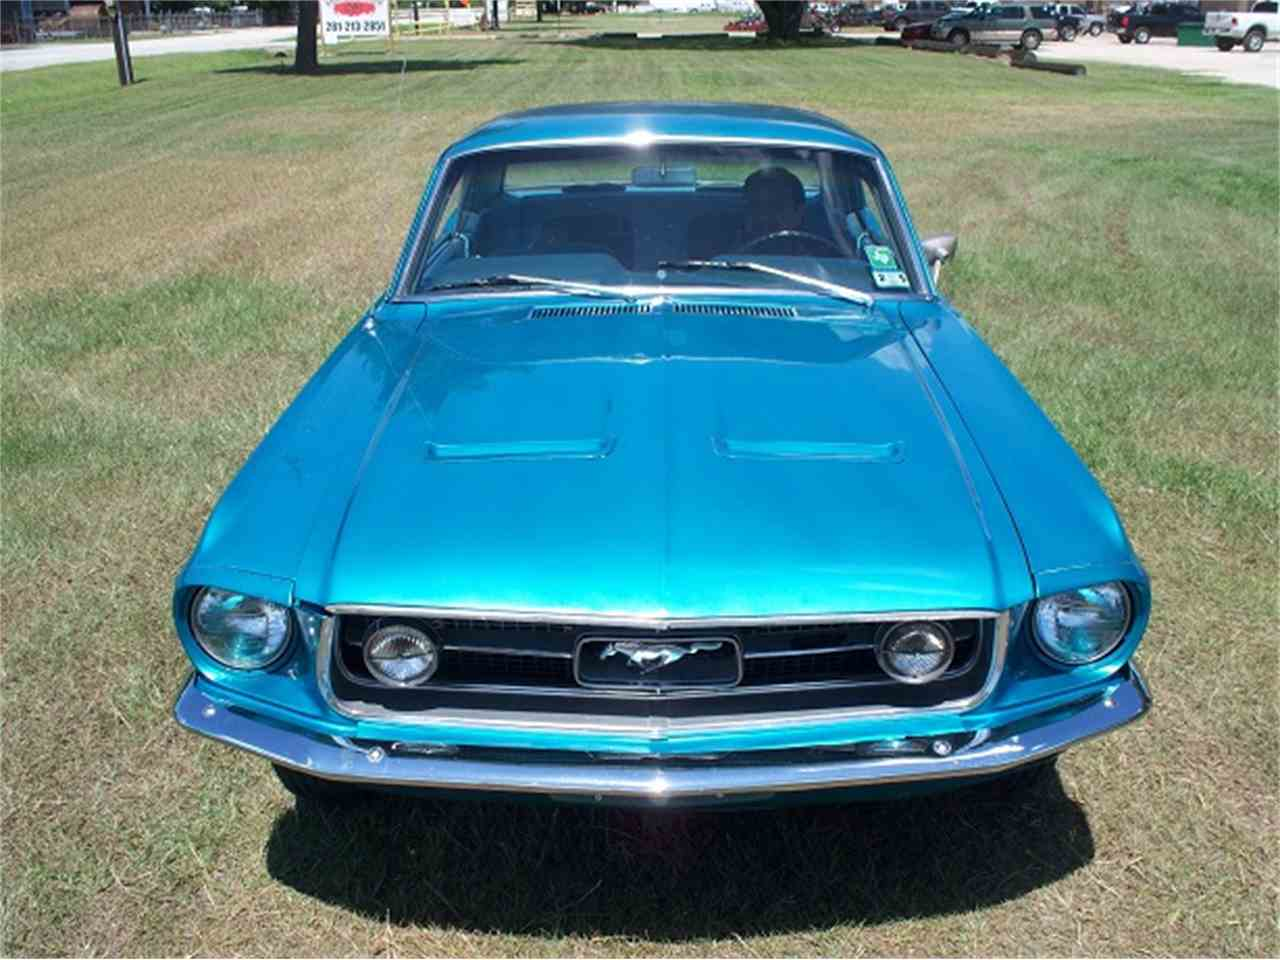 Large Picture of '67 Ford Mustang located in CYPRESS Texas - $15,995.00 - LFW3